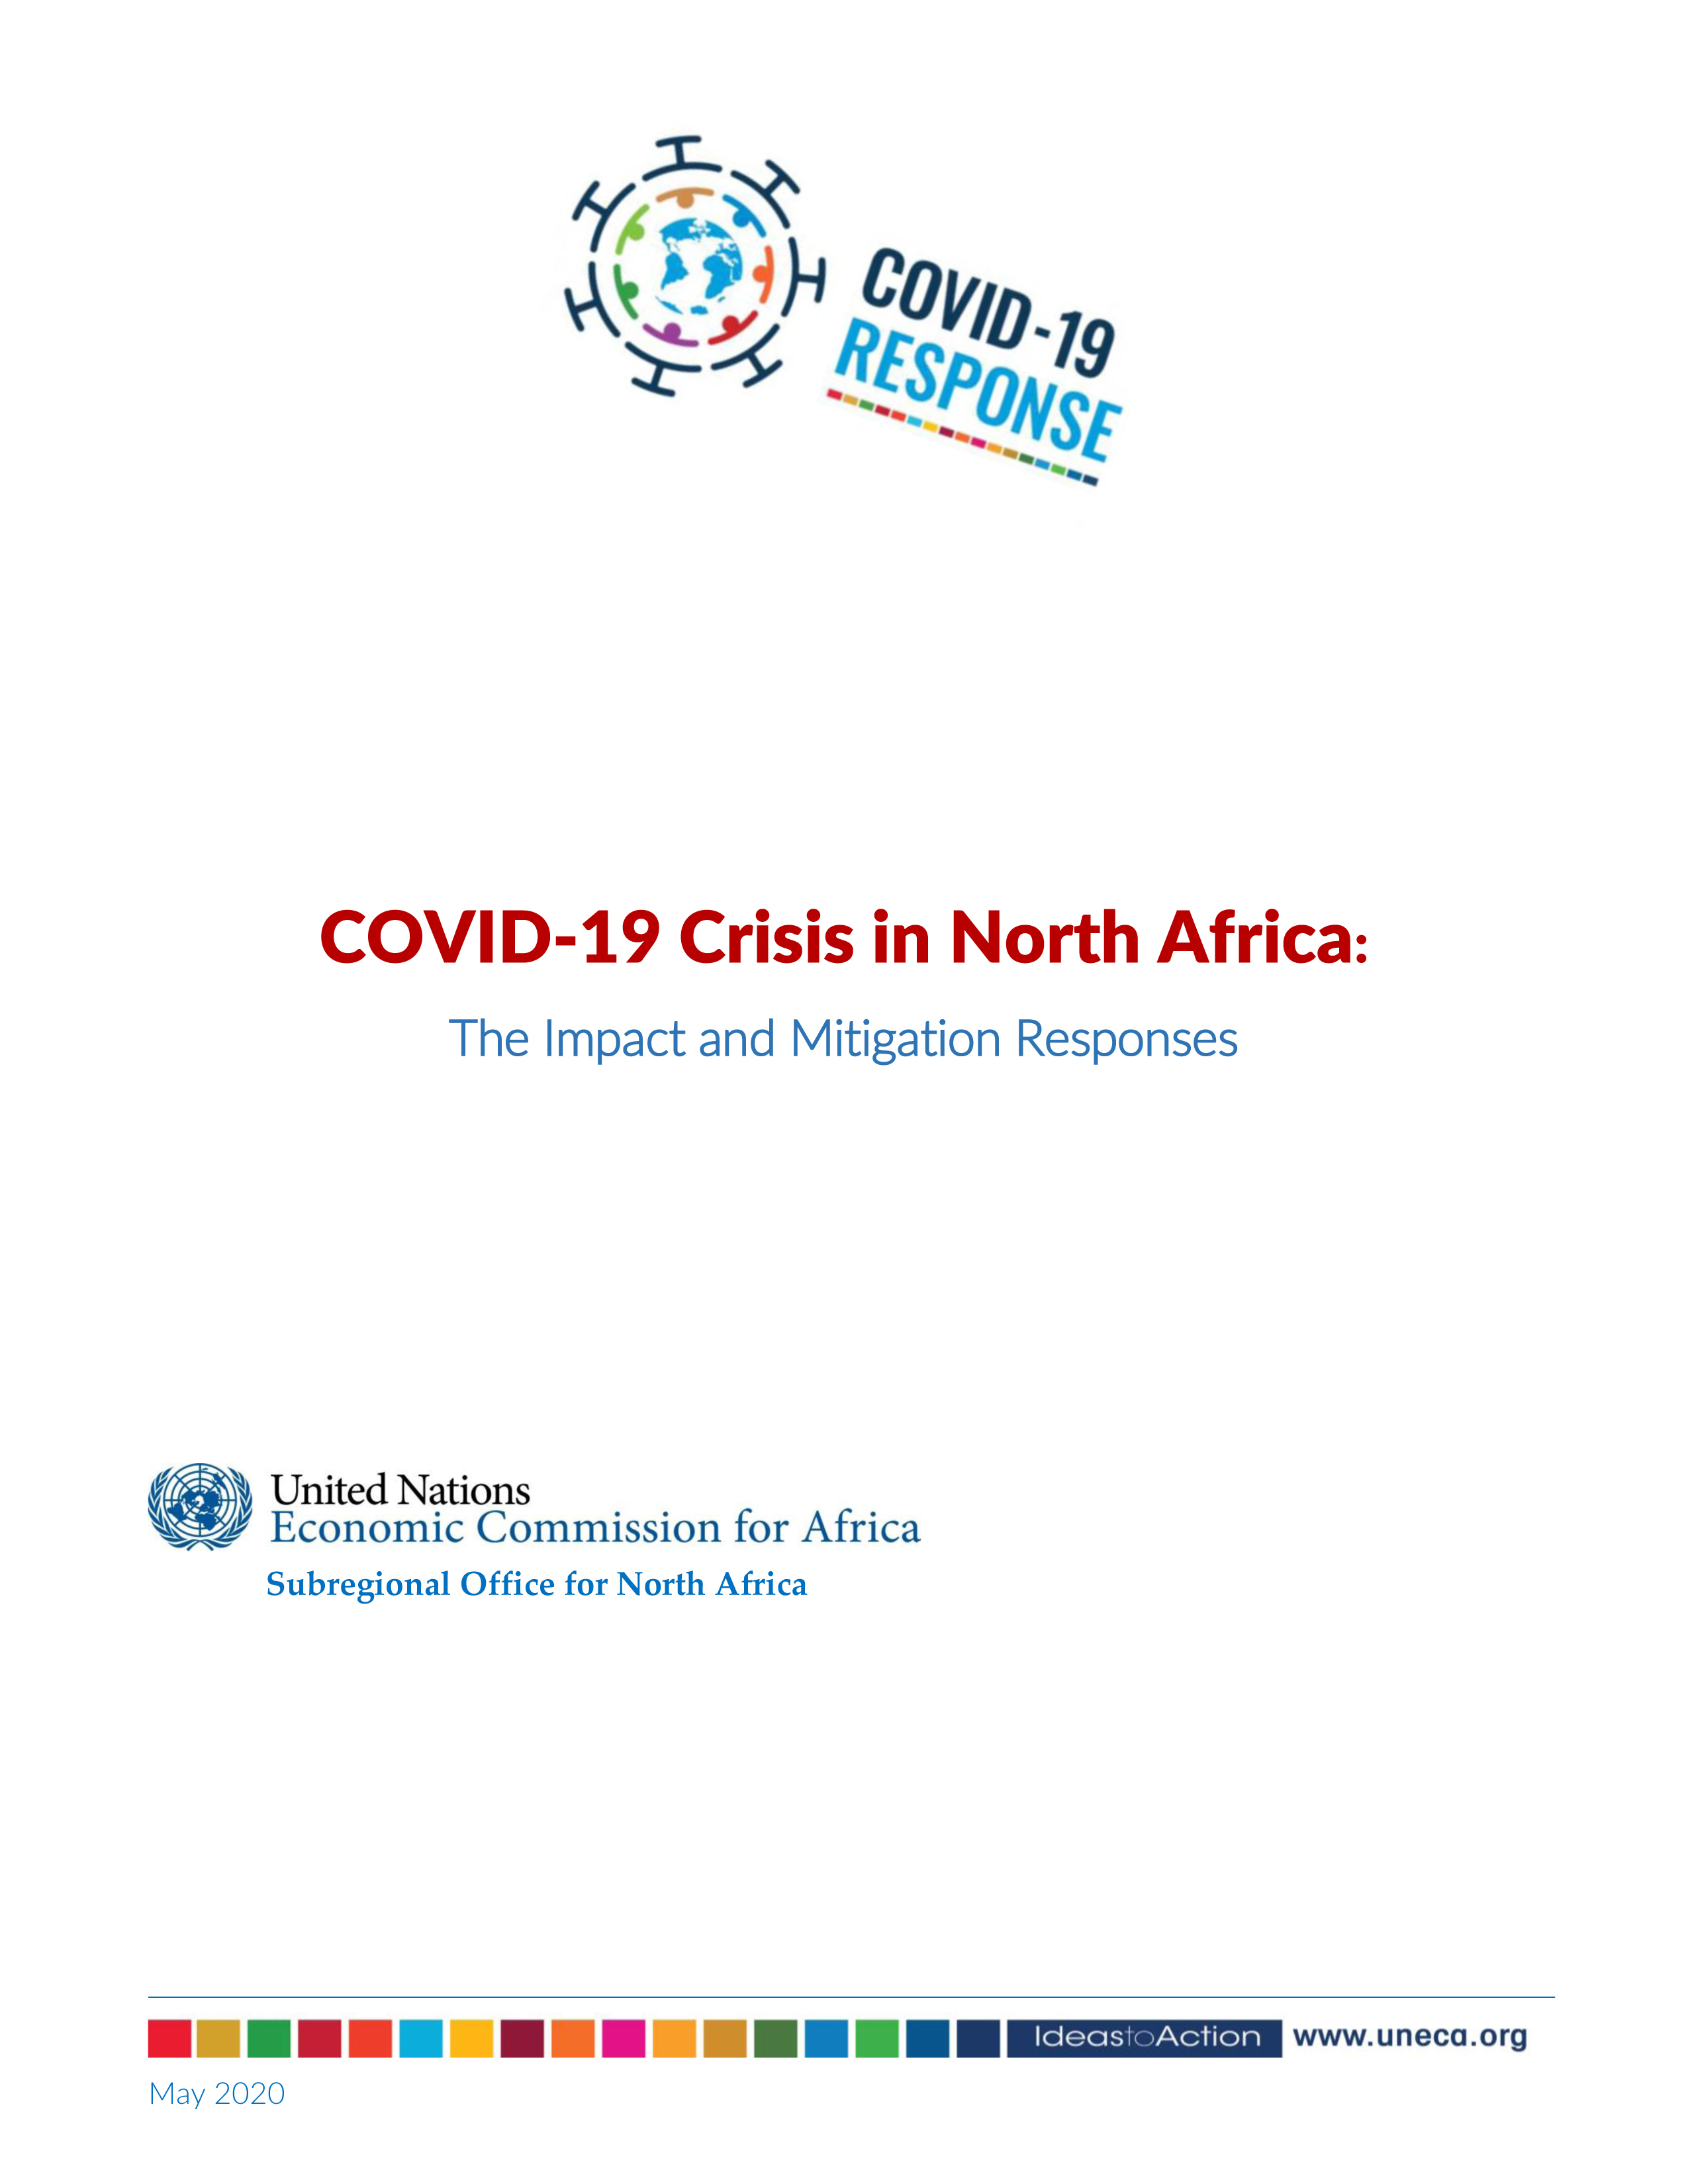 COVID-19 CRISIS IN NORTH AFRICA